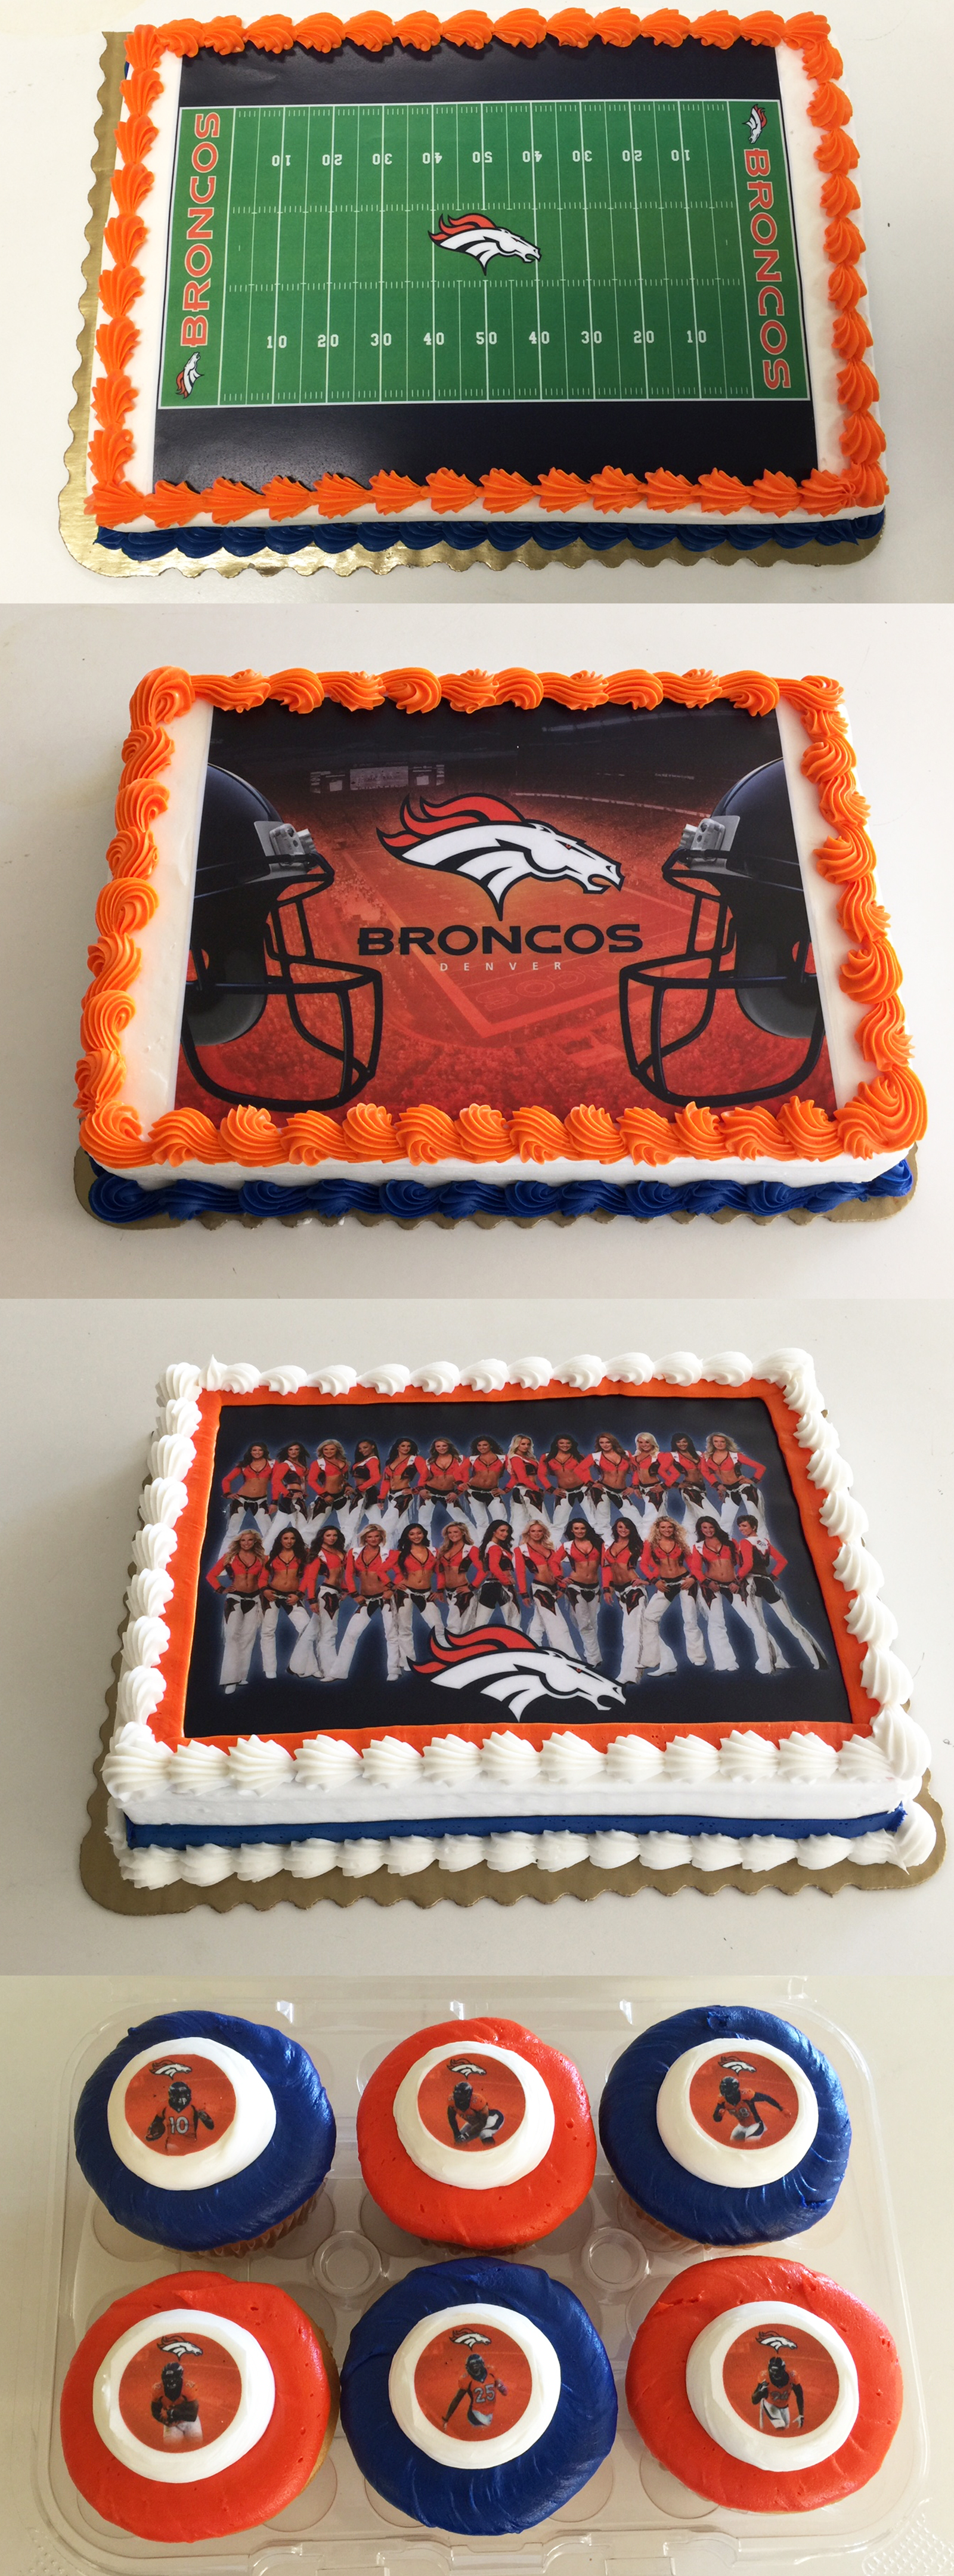 Pleasing Denver Broncos And King Soopers Birthday Cakes On Behance Birthday Cards Printable Trancafe Filternl